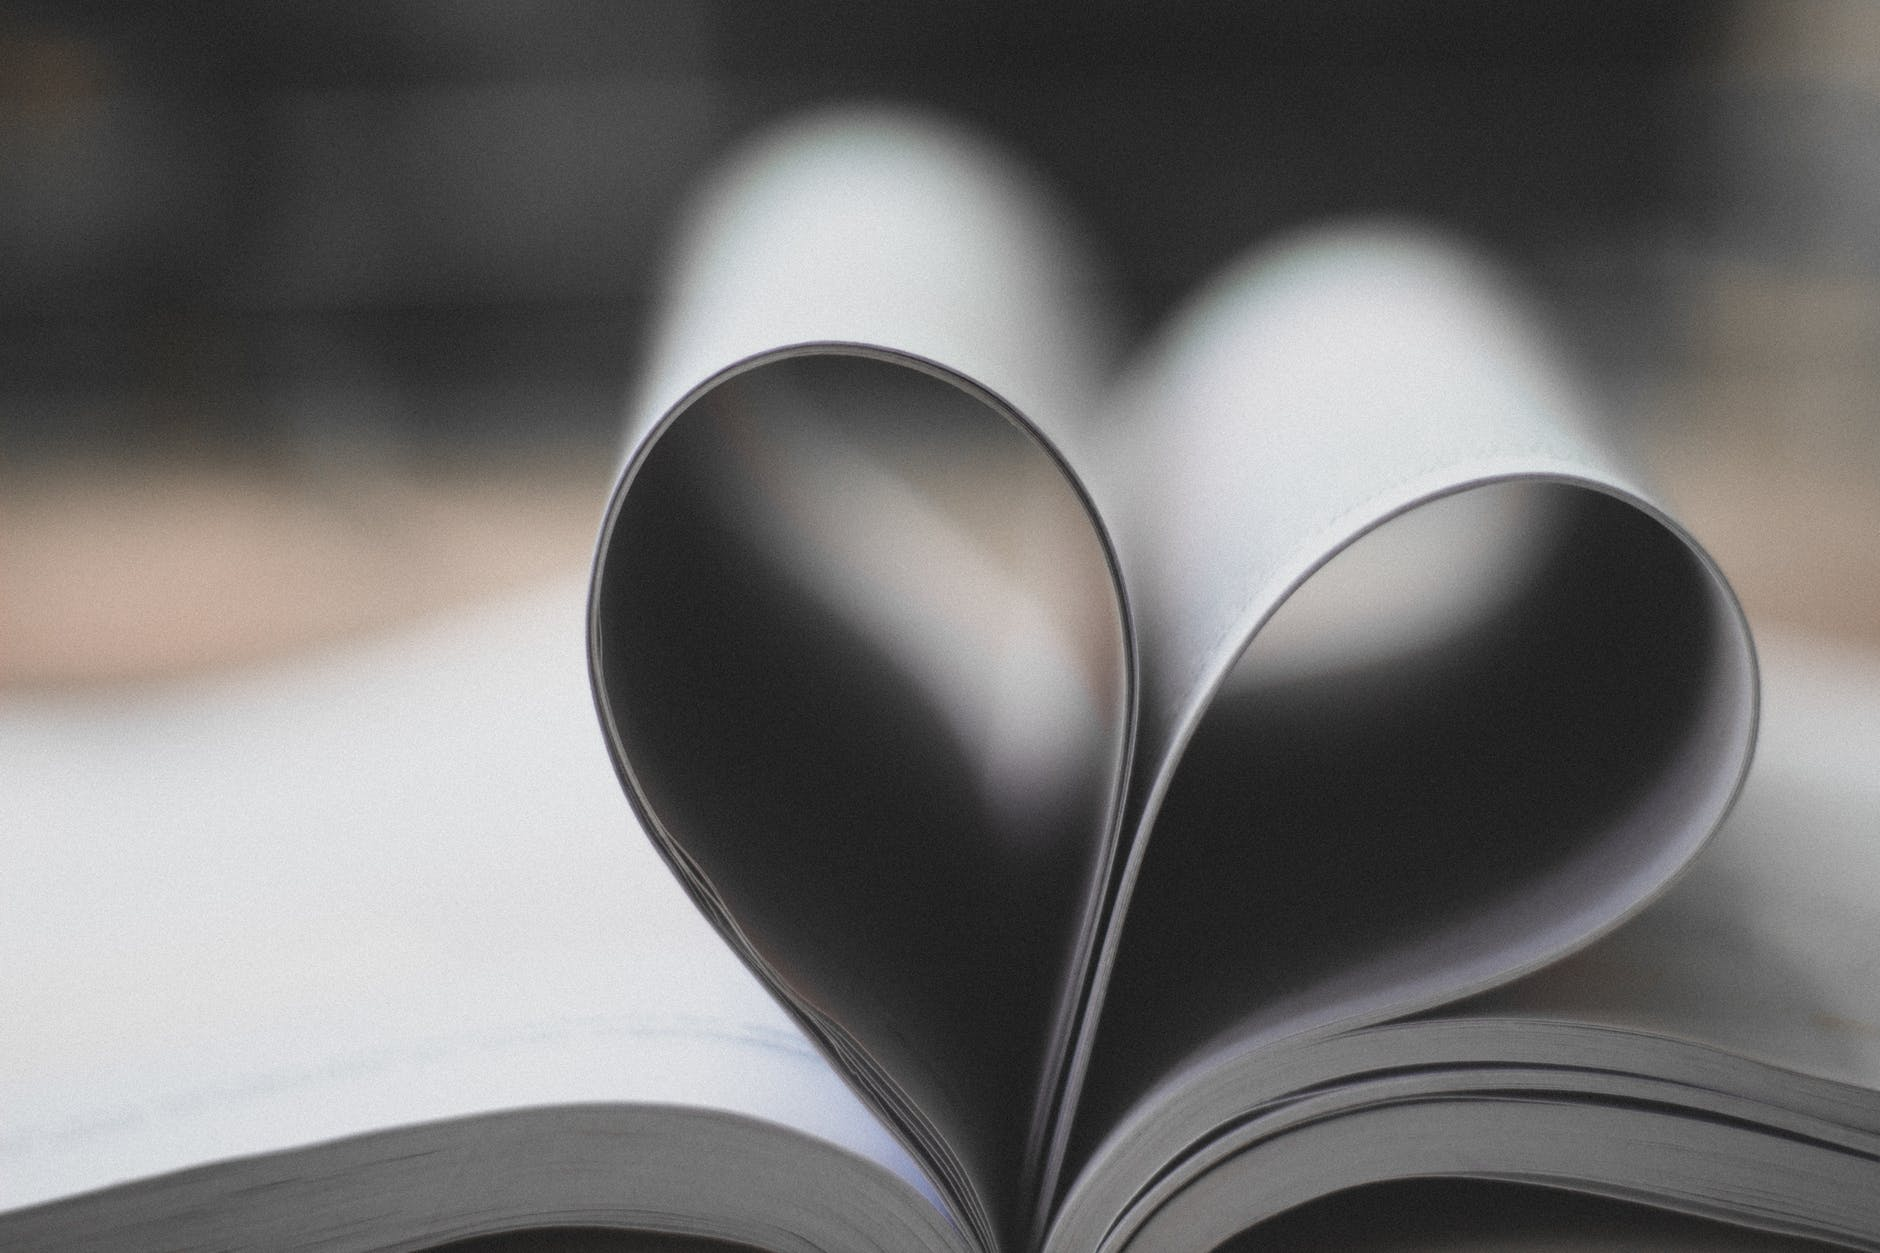 closeup photography of book page folding forming heart